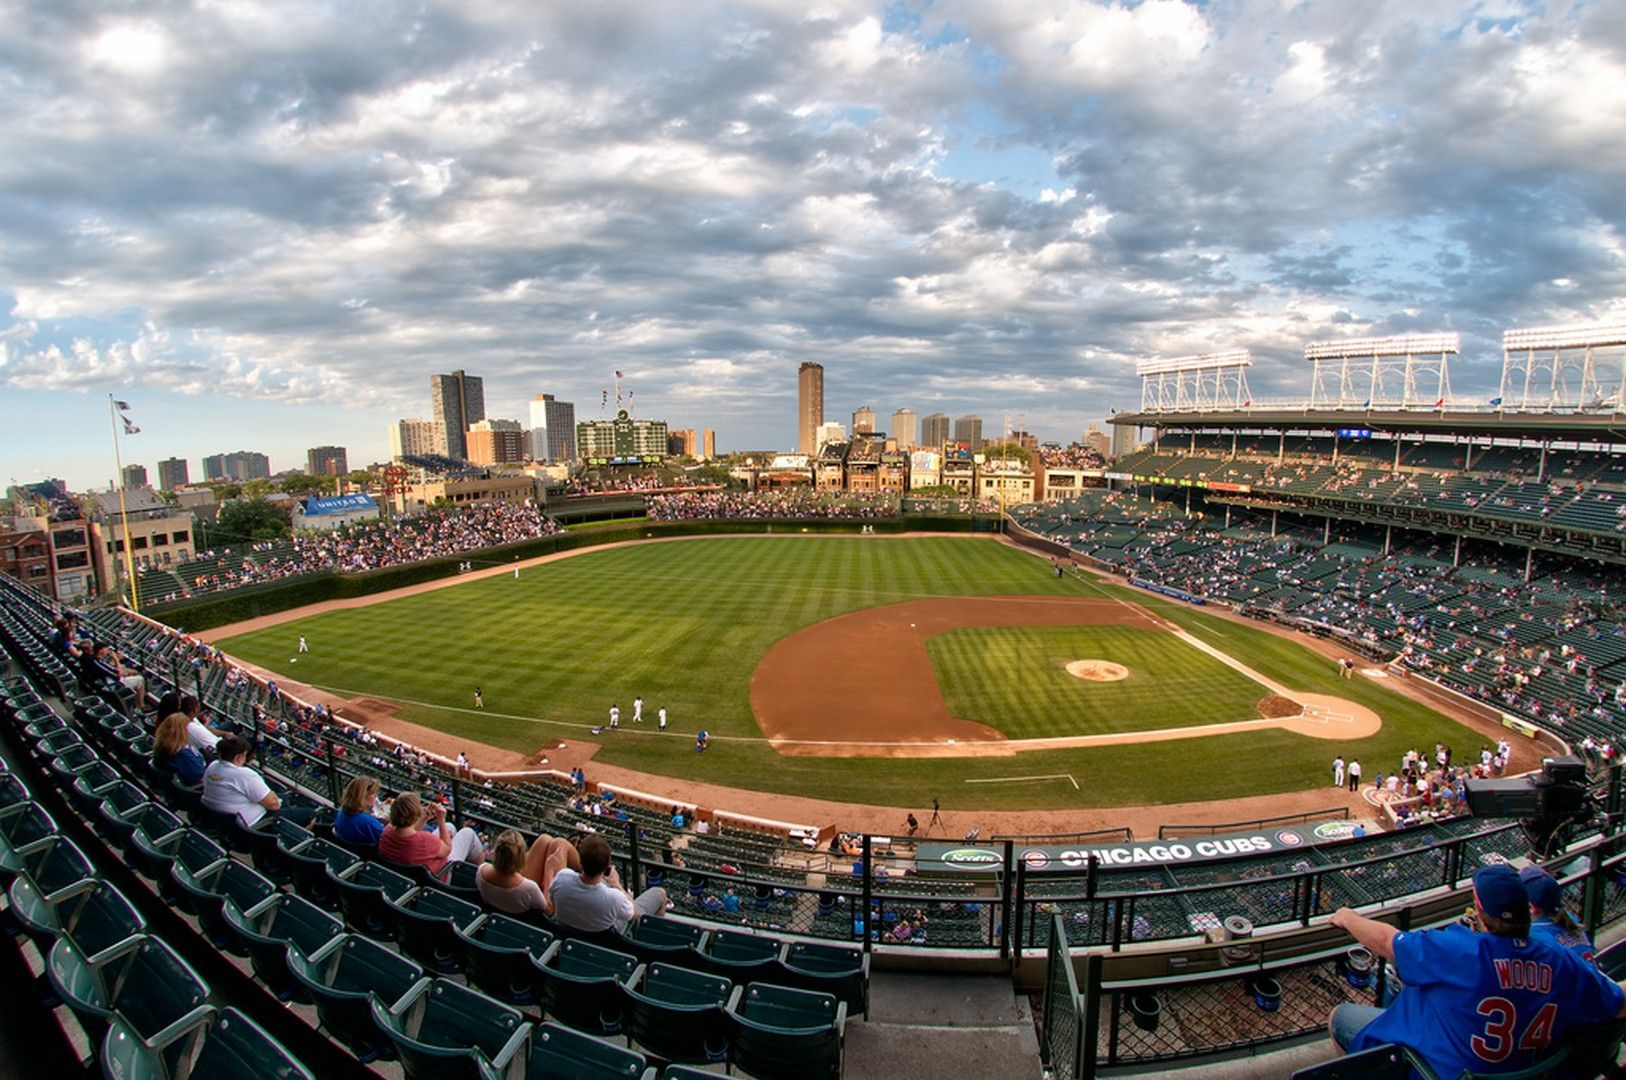 HD Wrigley Field Wallpaper